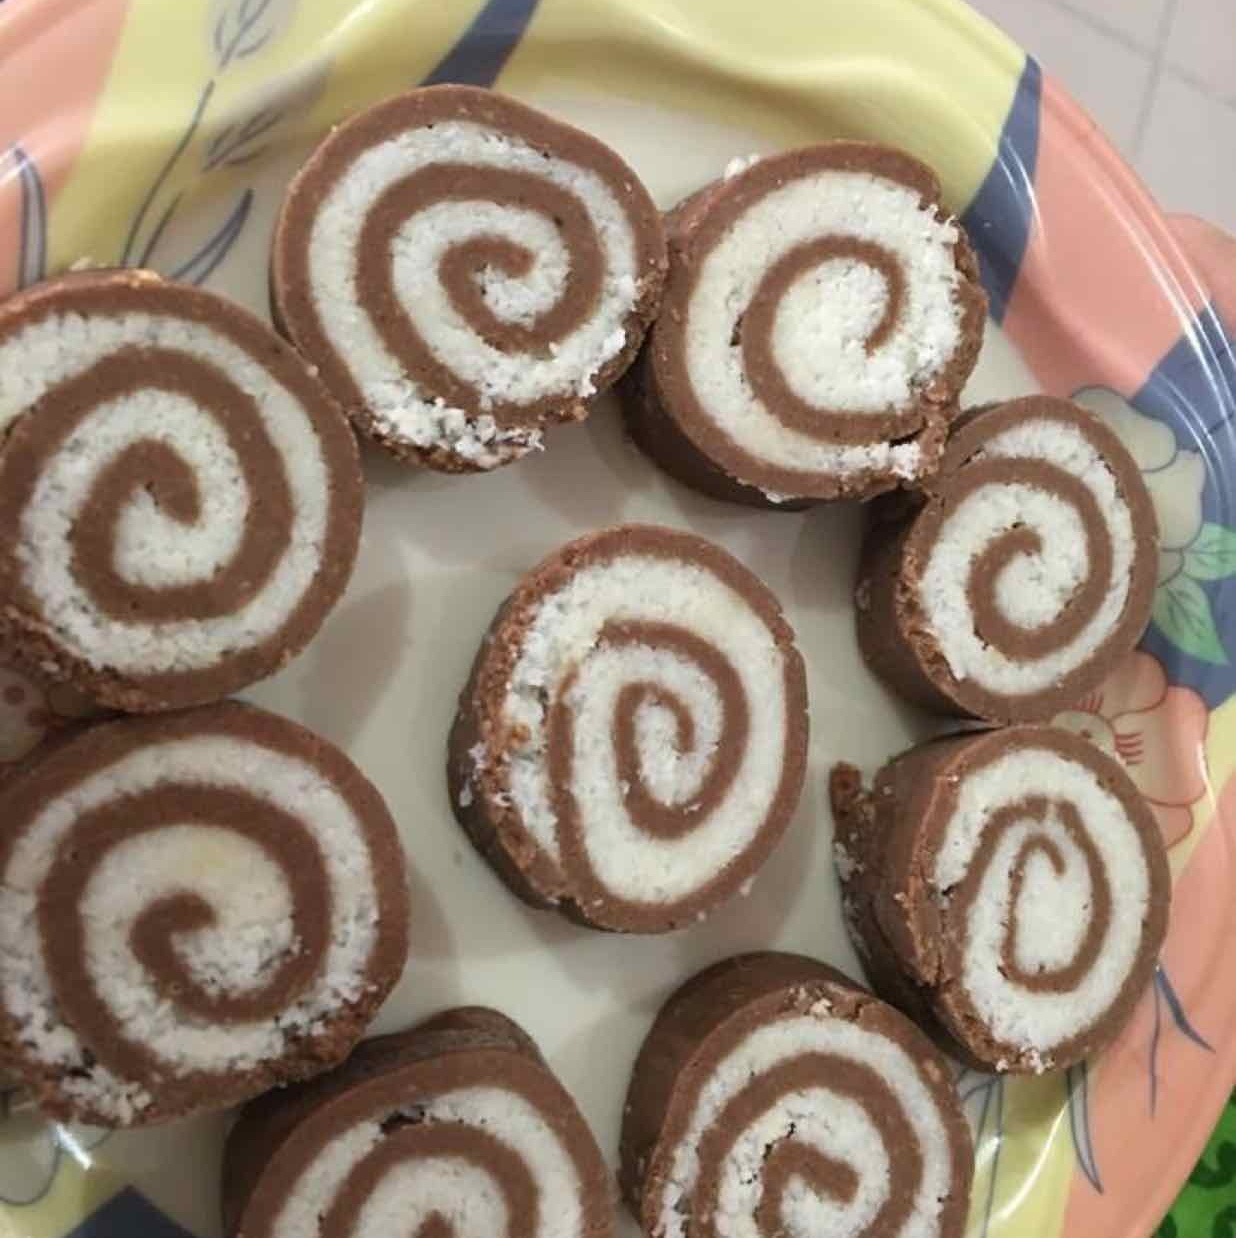 How to make Swiss roll